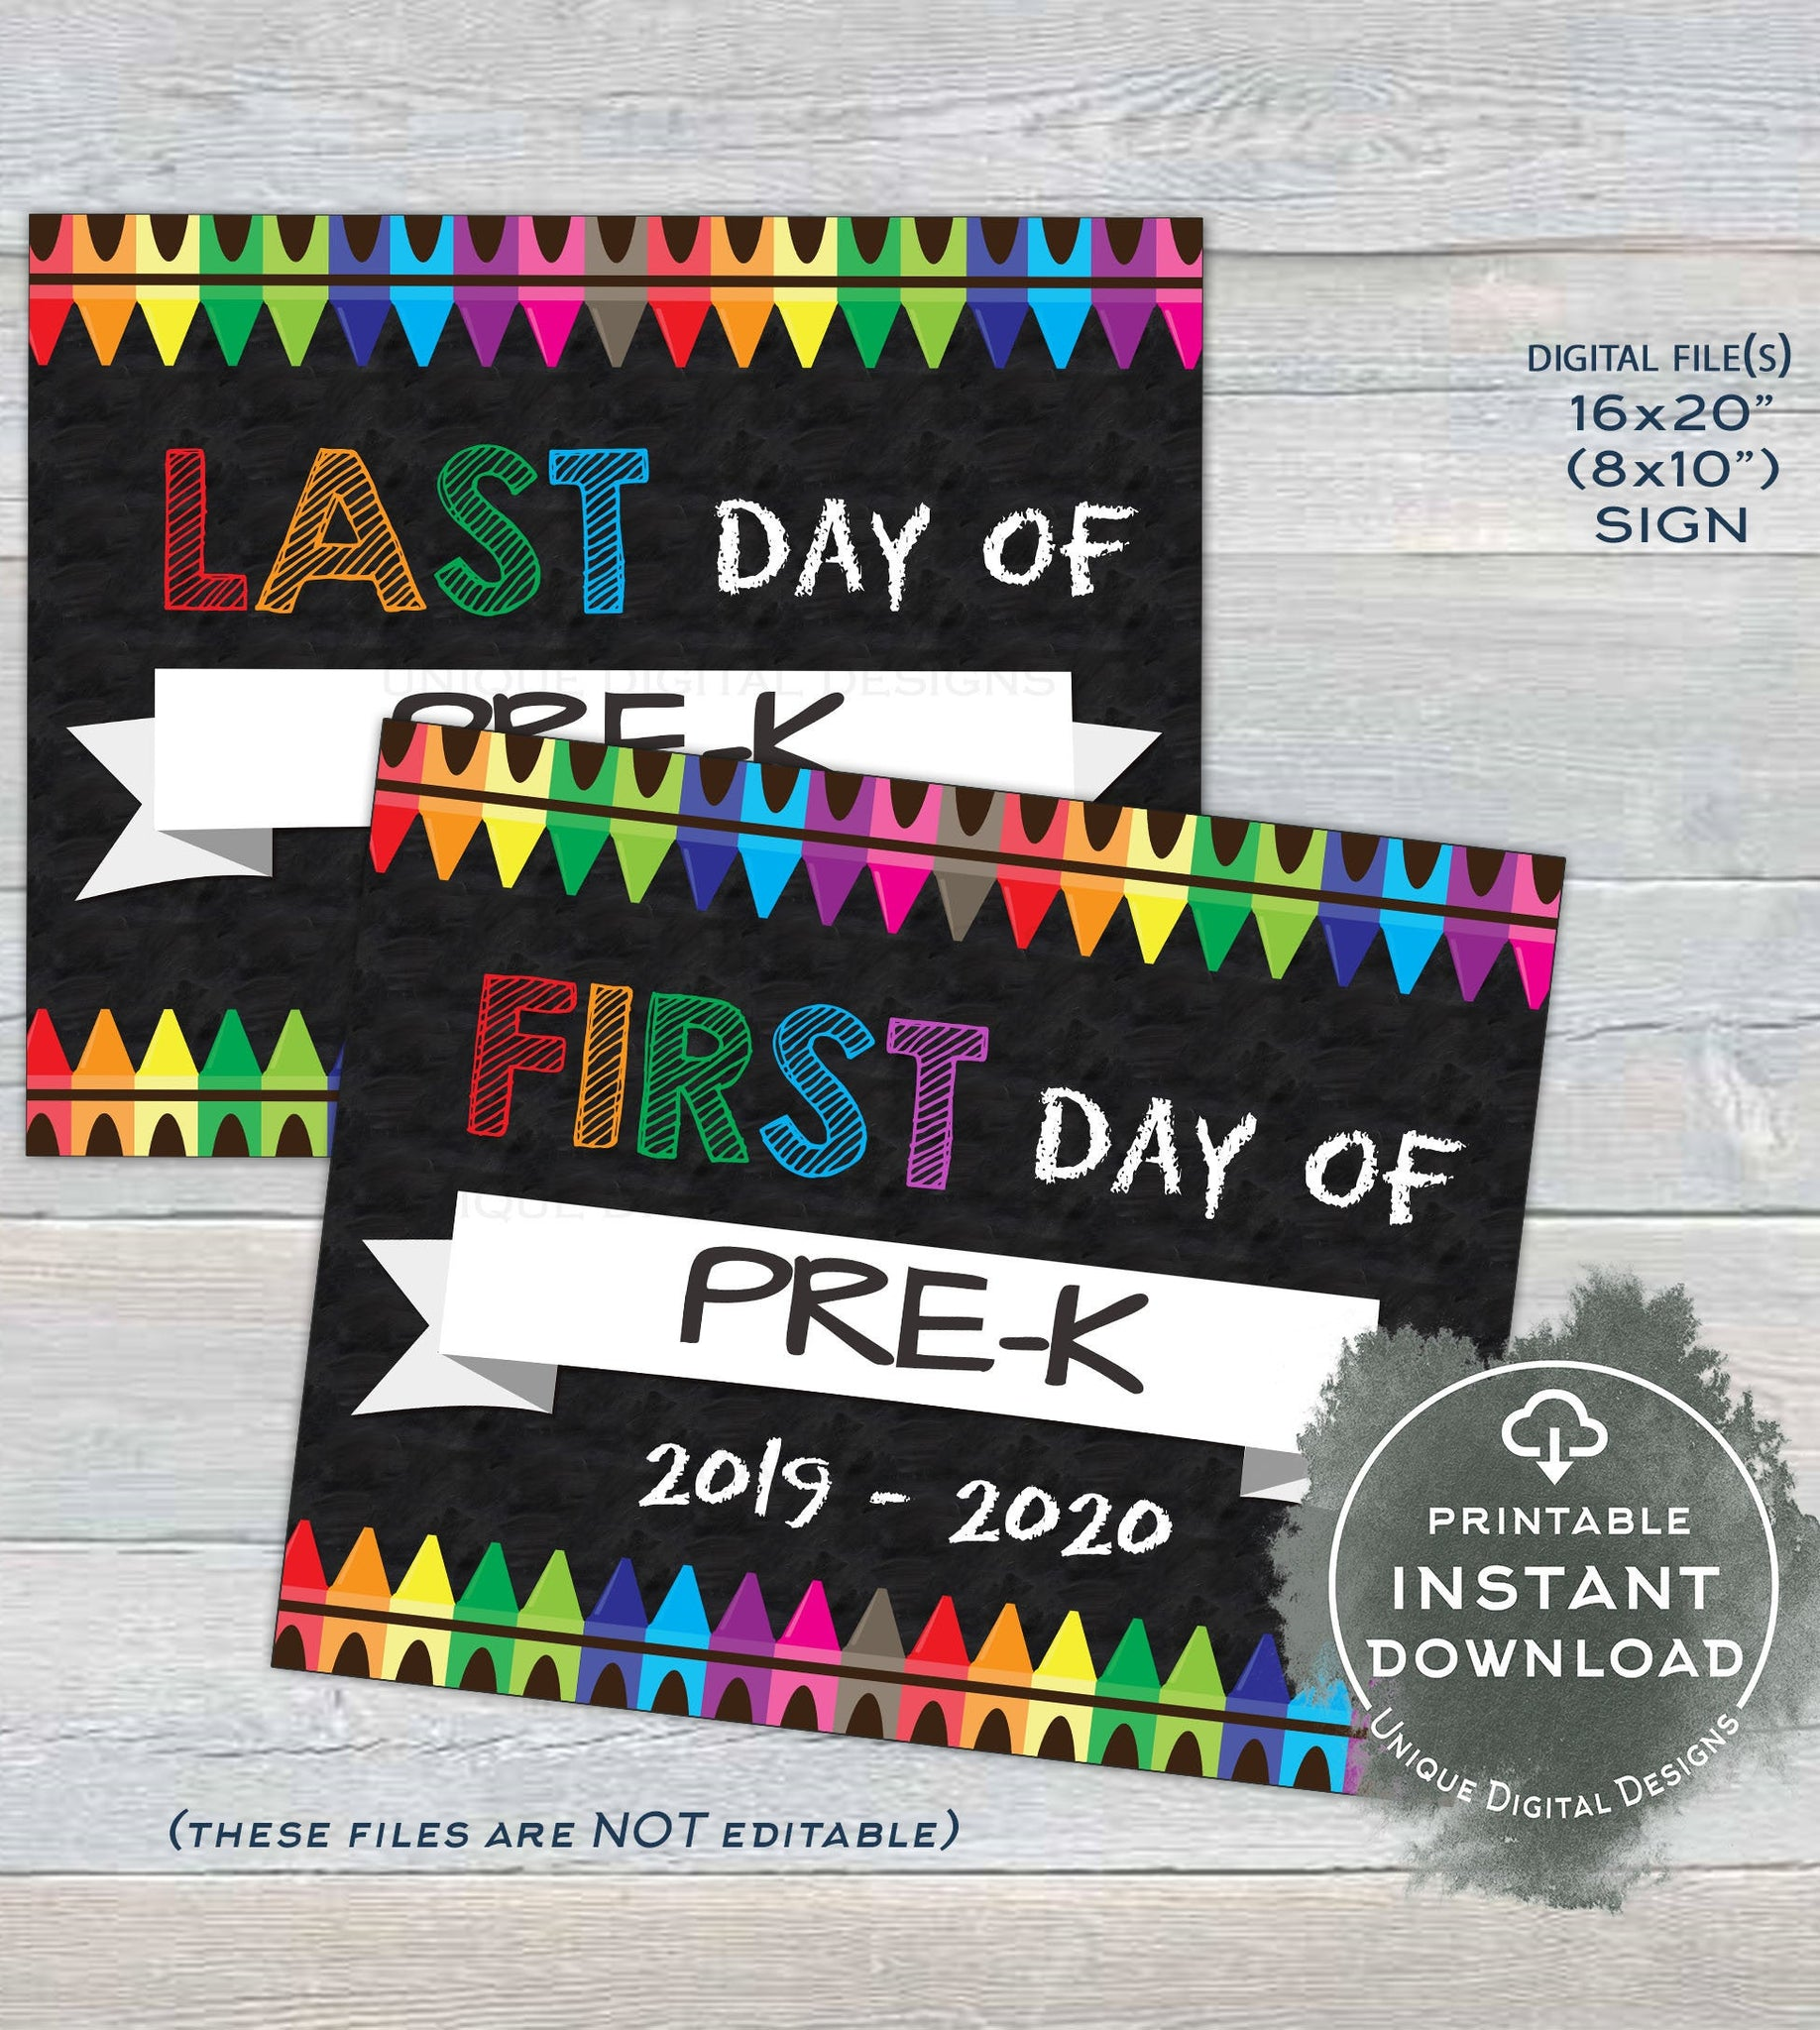 graphic about First Day of Pre K Sign Printable referred to as Printable Very first working day of University Chalkboard Indication reusable 1st